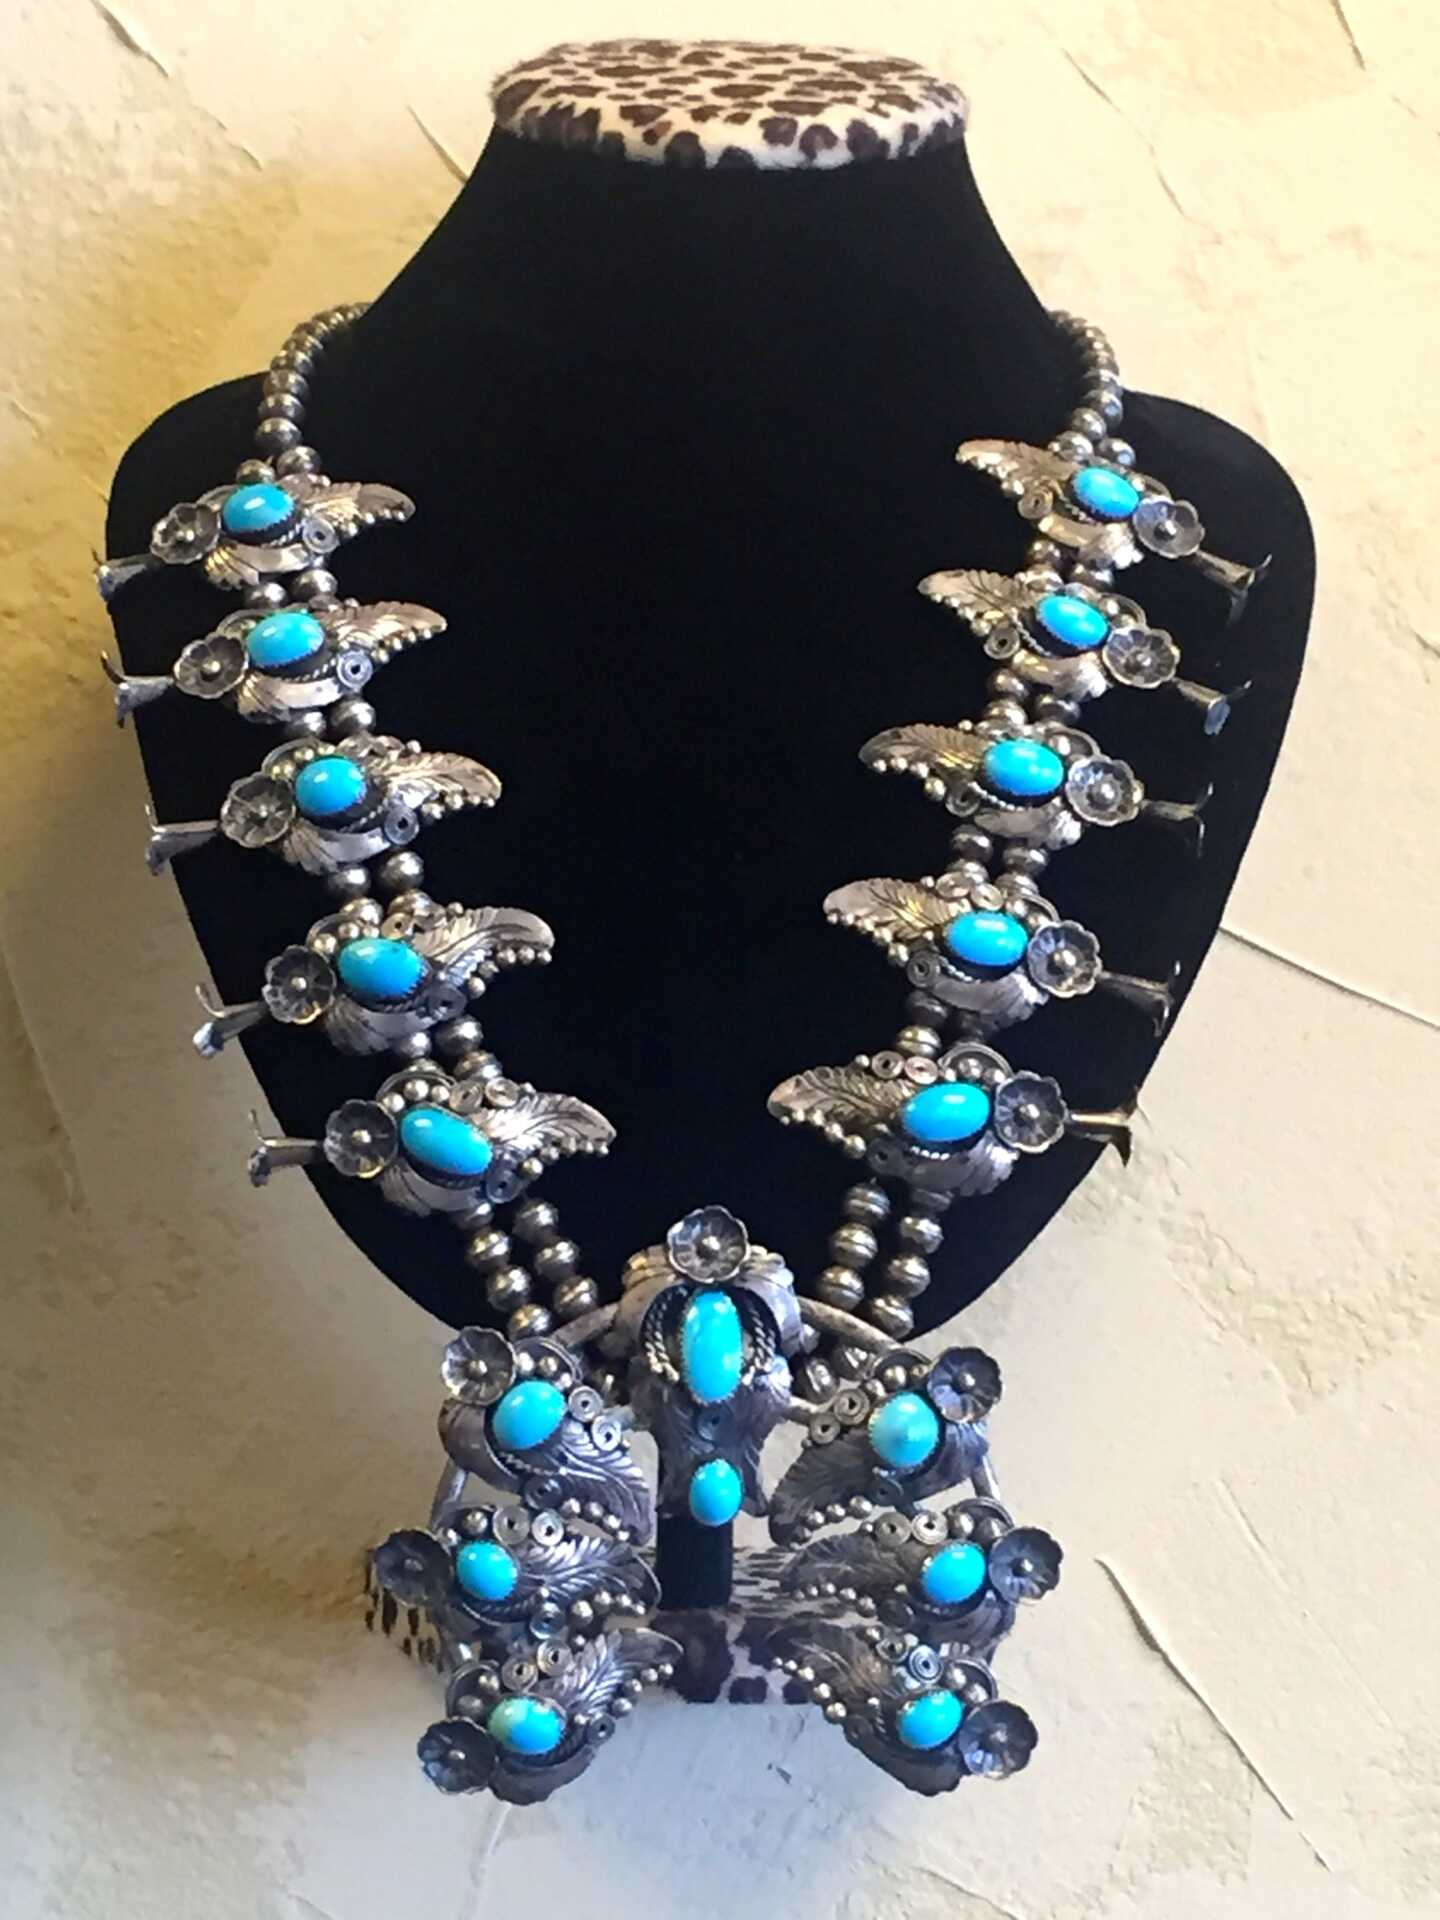 Turquoise Jewelry available at Artisan Jewelers